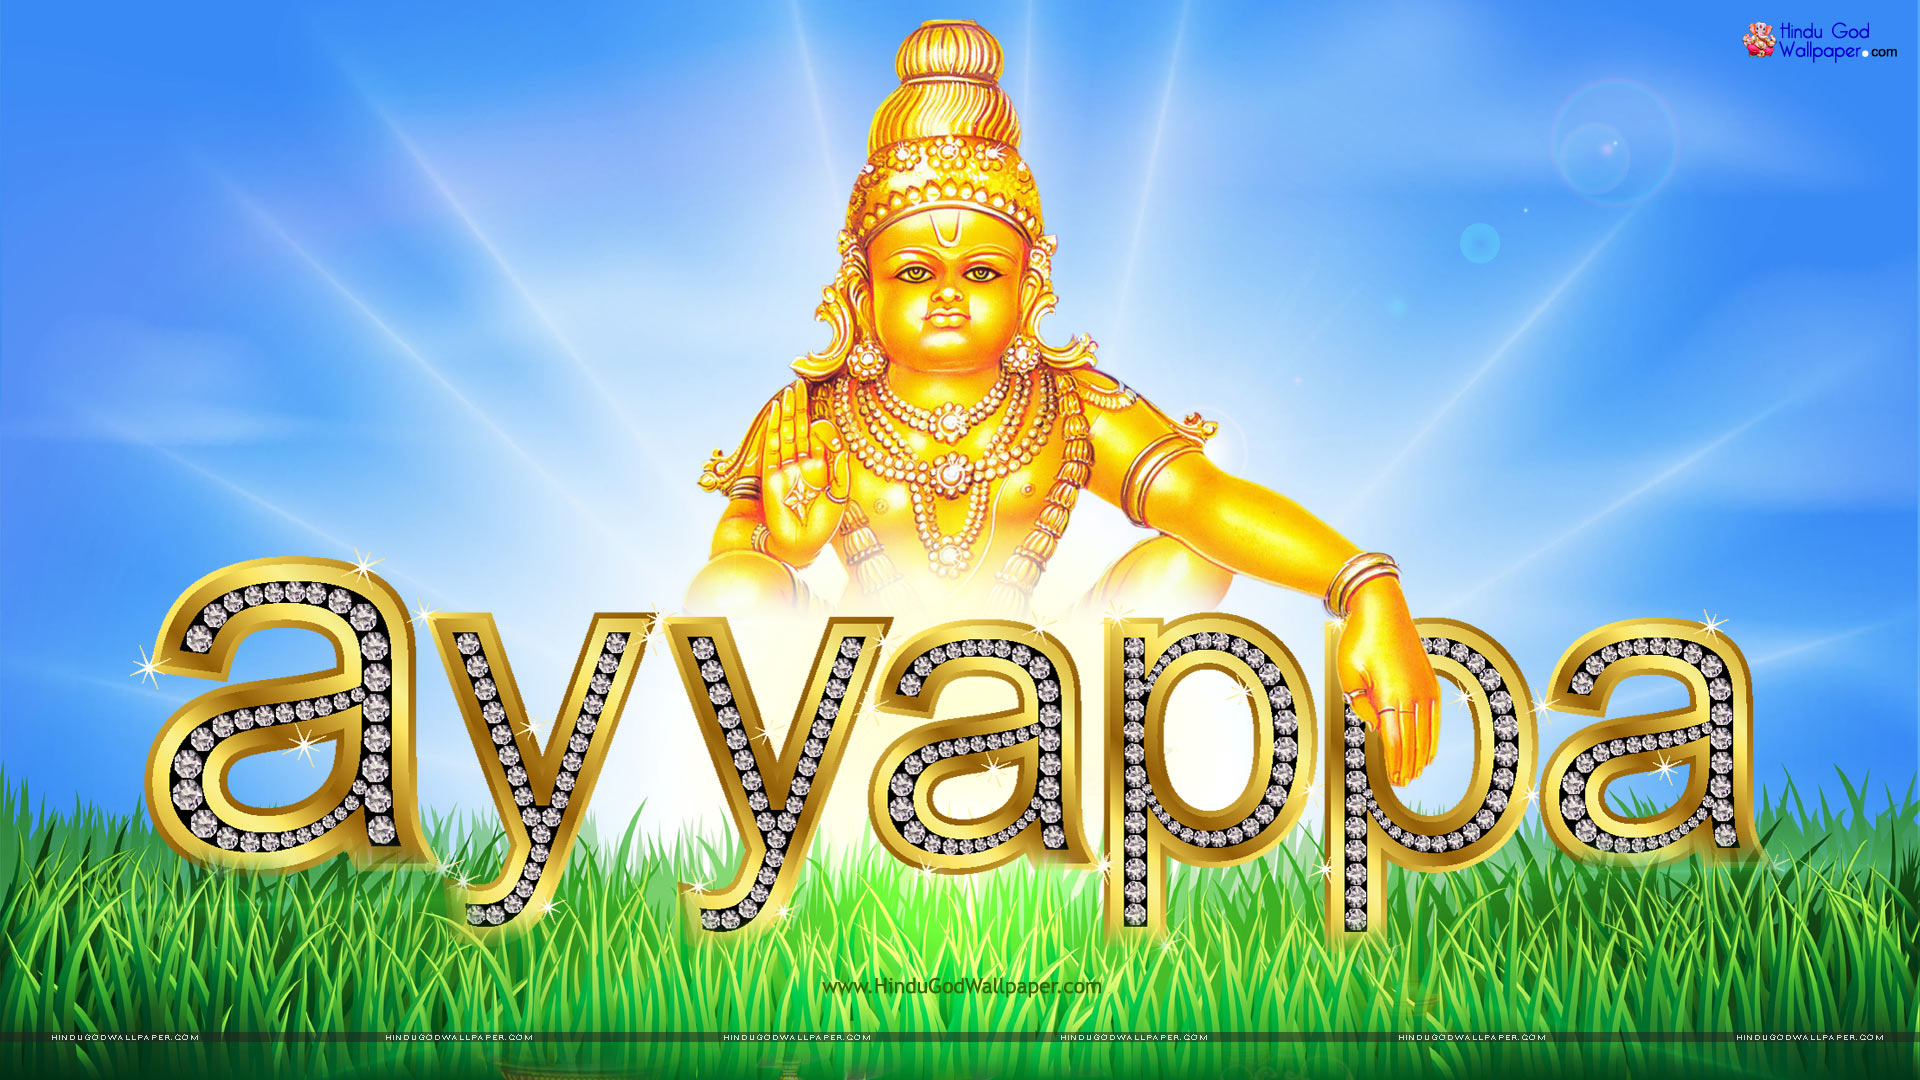 Welcome to Hindu God Wallpapers website Here you can find wallpapers 1920x1080